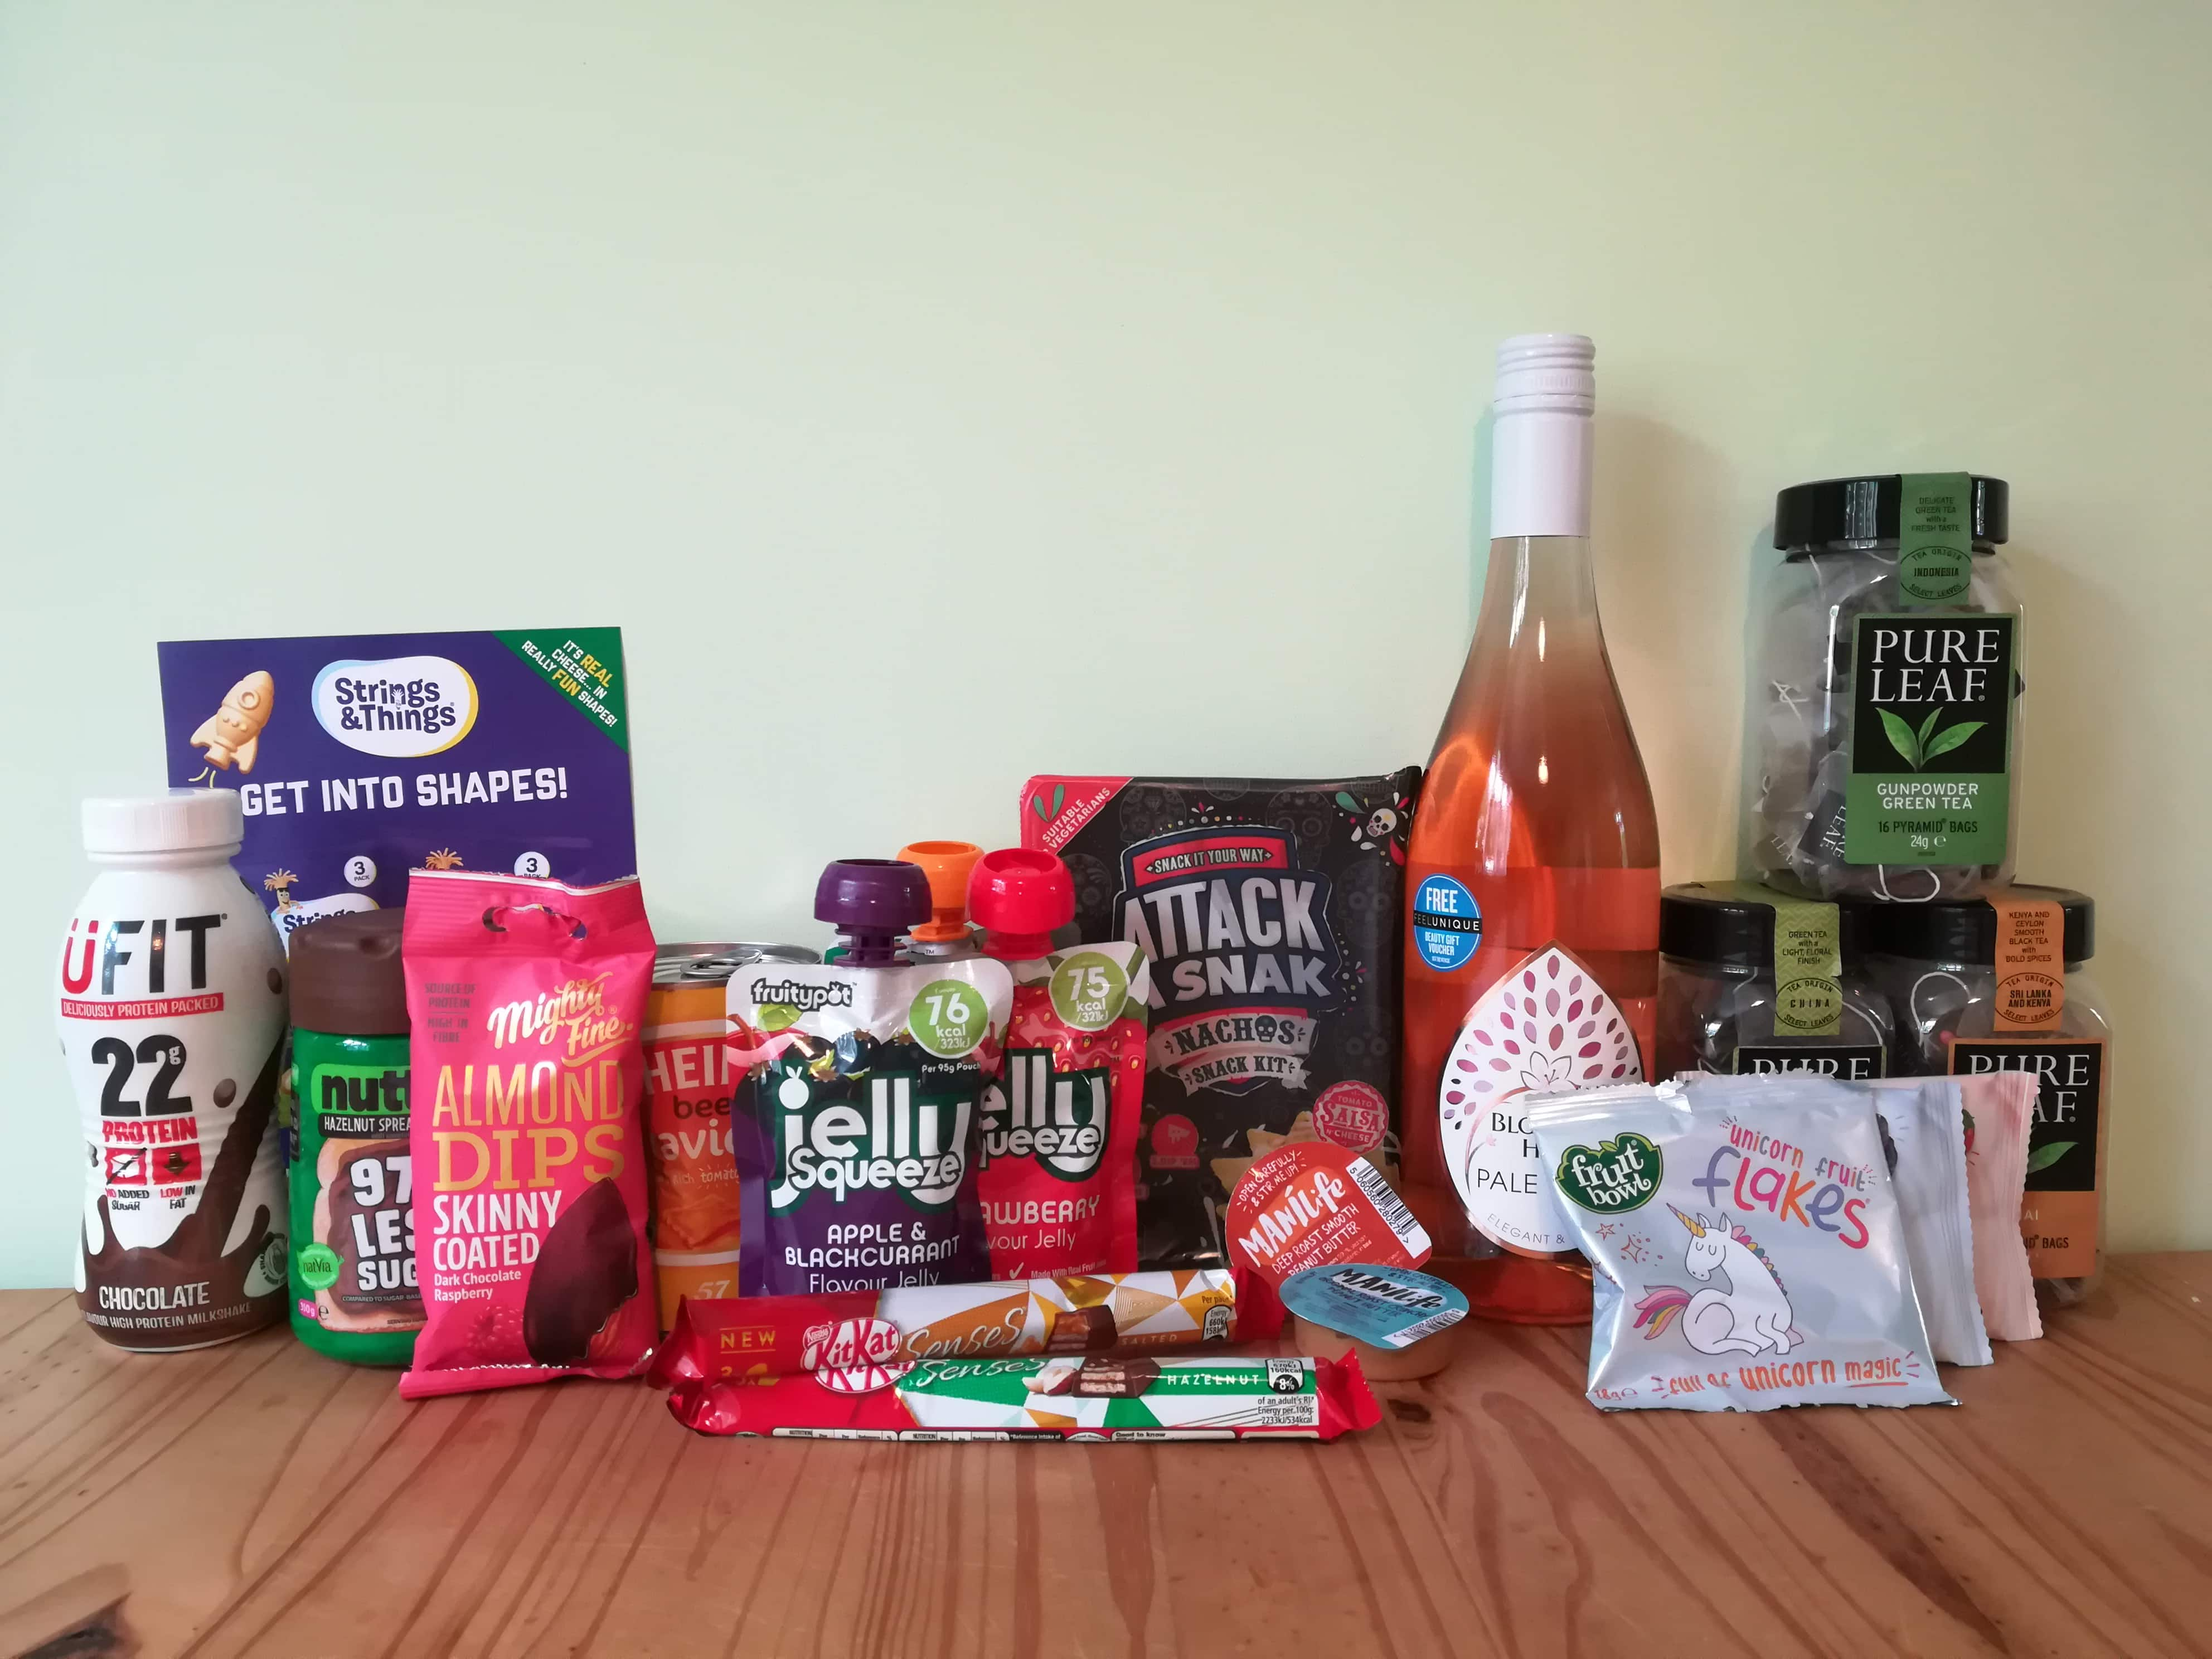 DegustaBox UK August 2019 Subscription Box Review + Coupon!